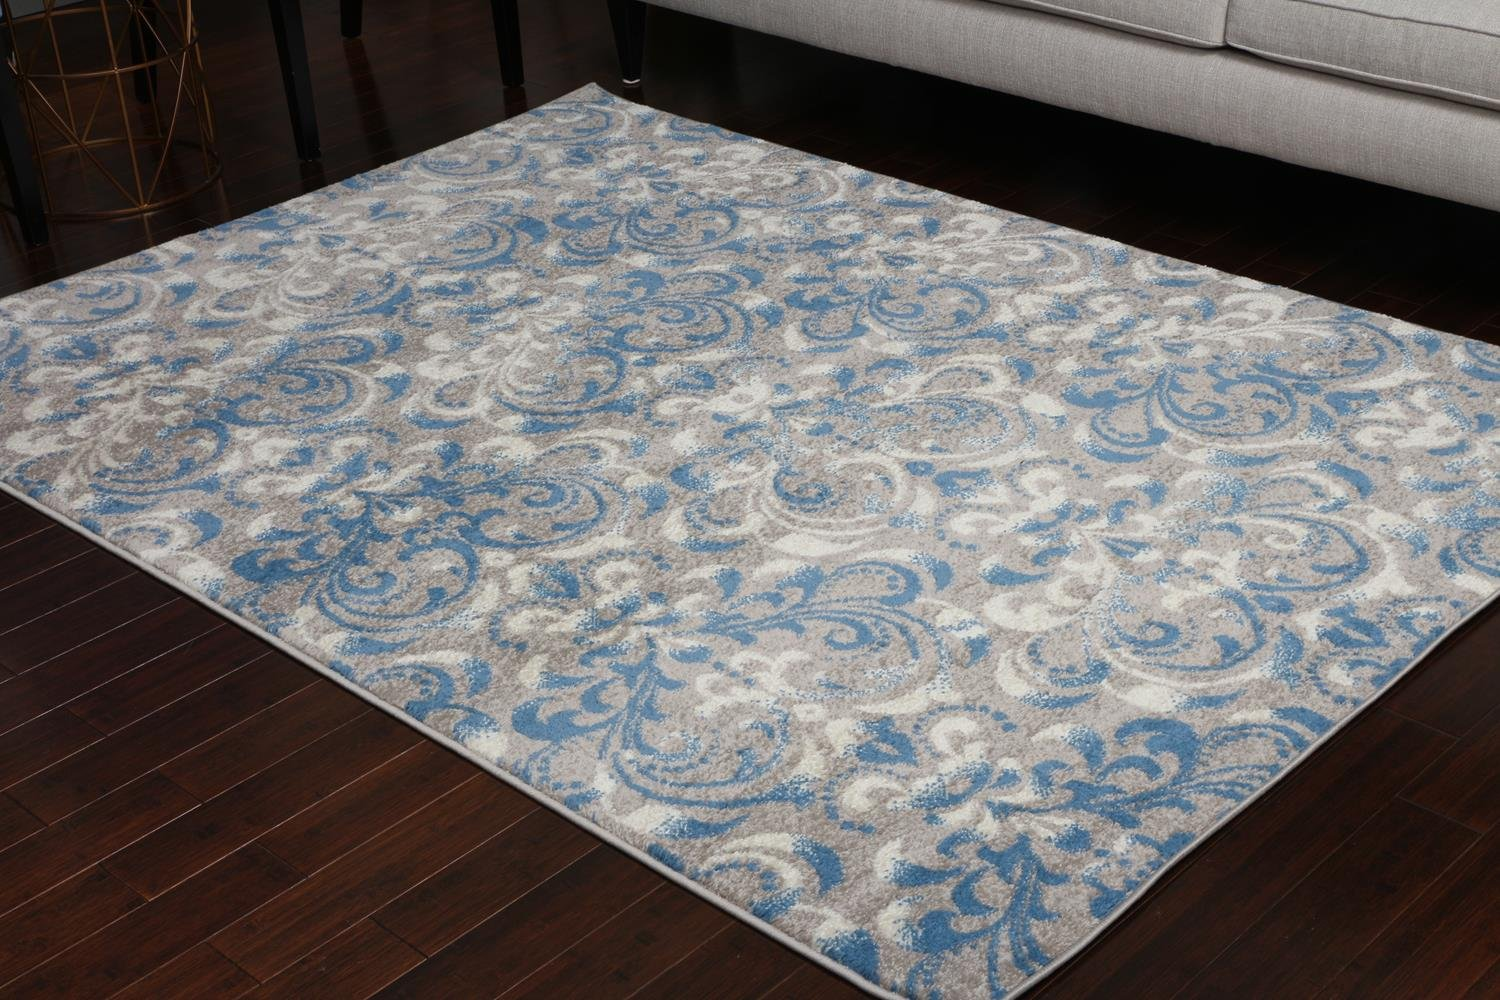 Paris Collection Oriental Carpet Area Rug Blue Cream Grey Grey 5055grey 2x8 2'2x7'2